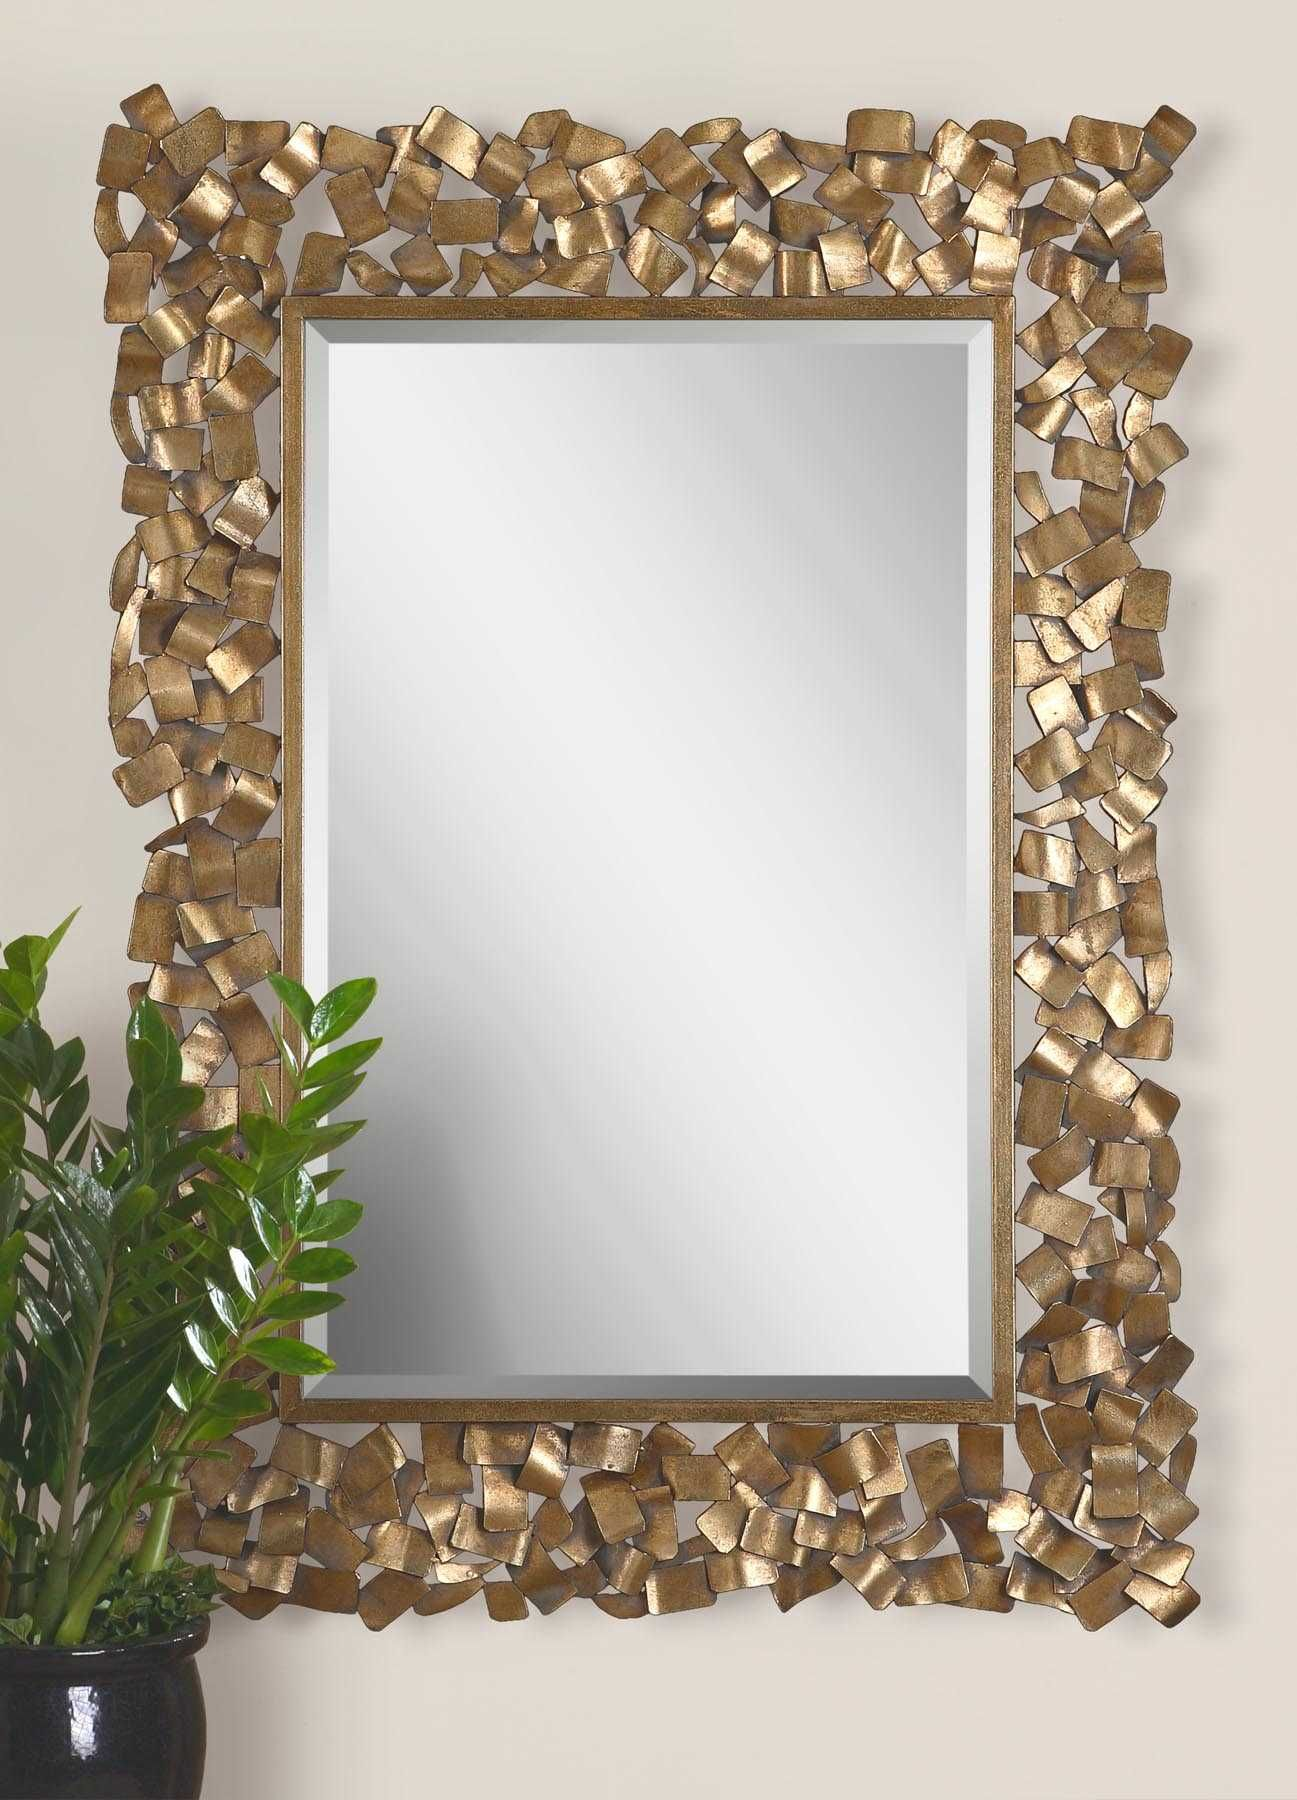 Capulin Mirror Uttermost Antique Gold Mirror Gold Mirror Uttermost Mirrors